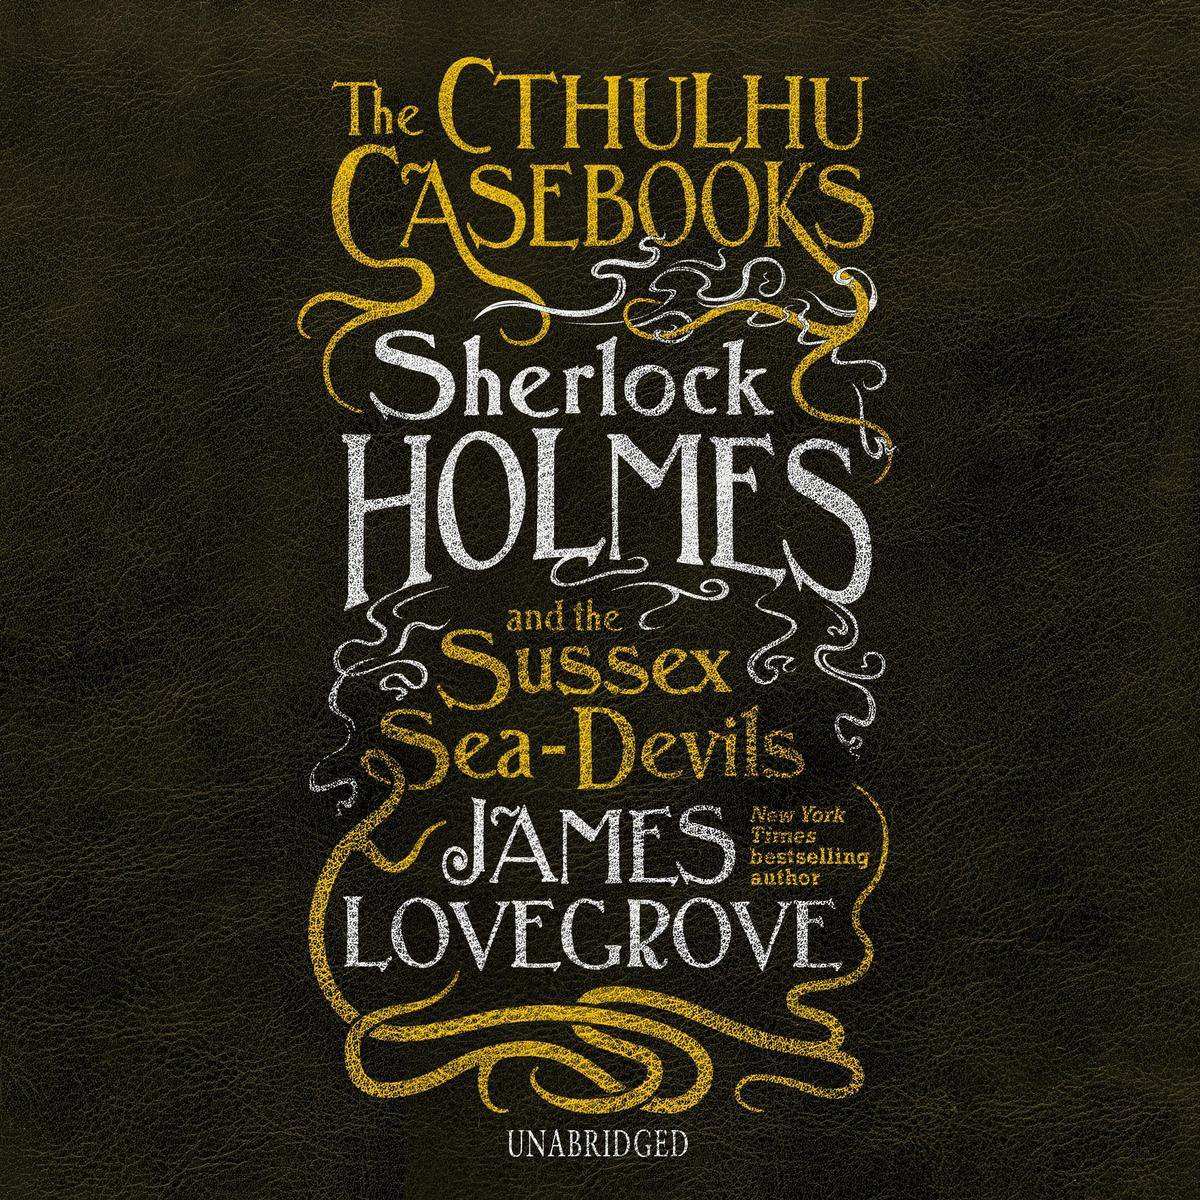 The Cthulhu Casebooks: Sherlock Holmes and the Sussex Sea-Devils